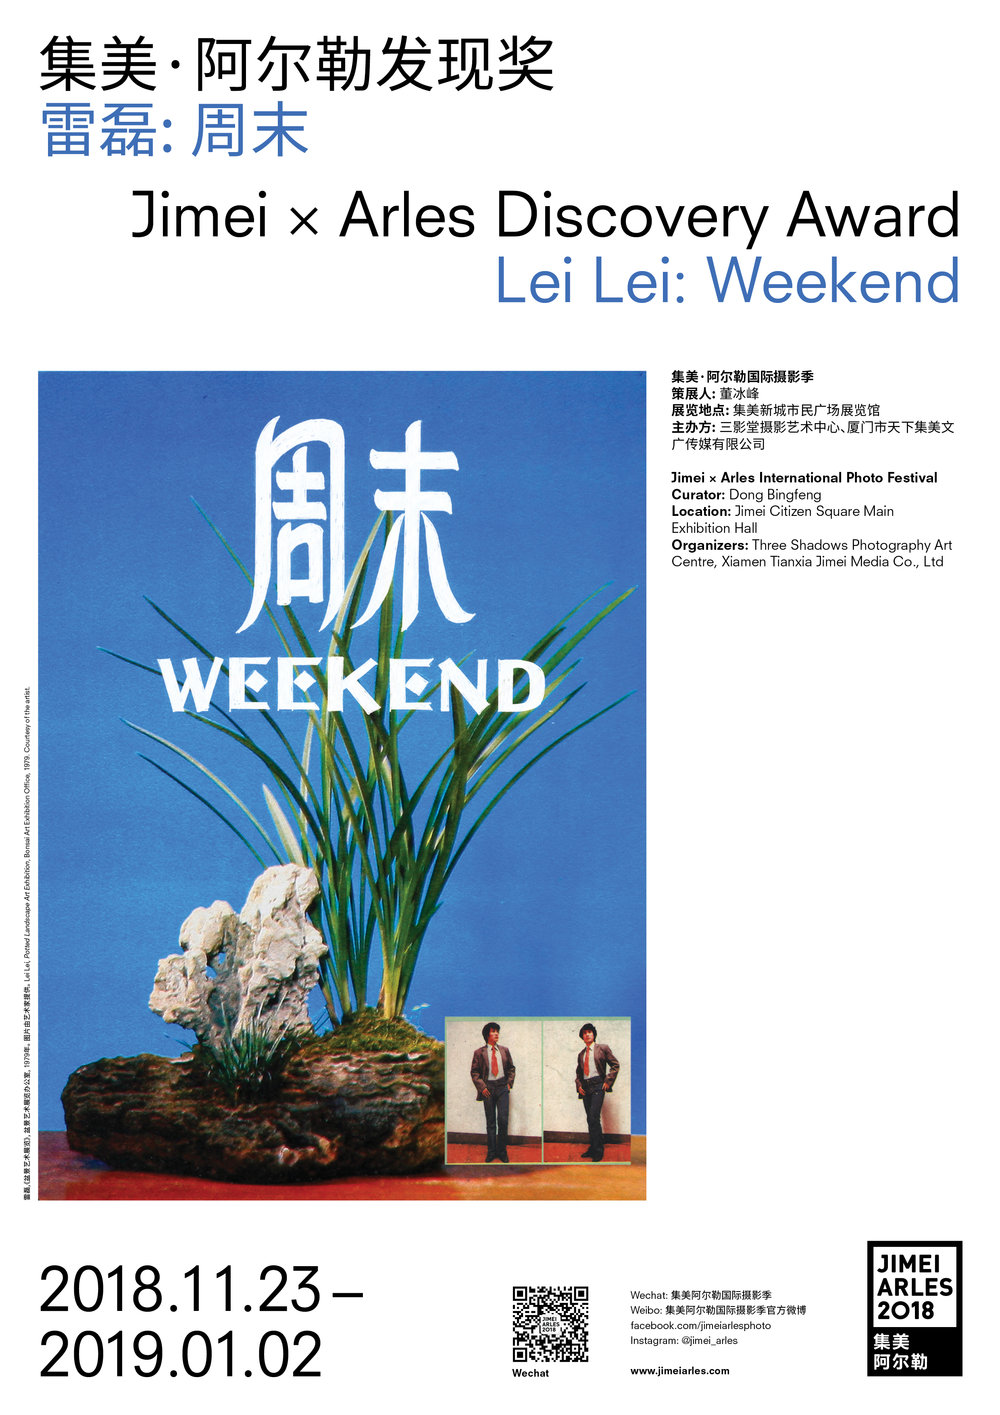 JIMEIARLES_exhibition poster_Digital_Lei_Lei.jpg